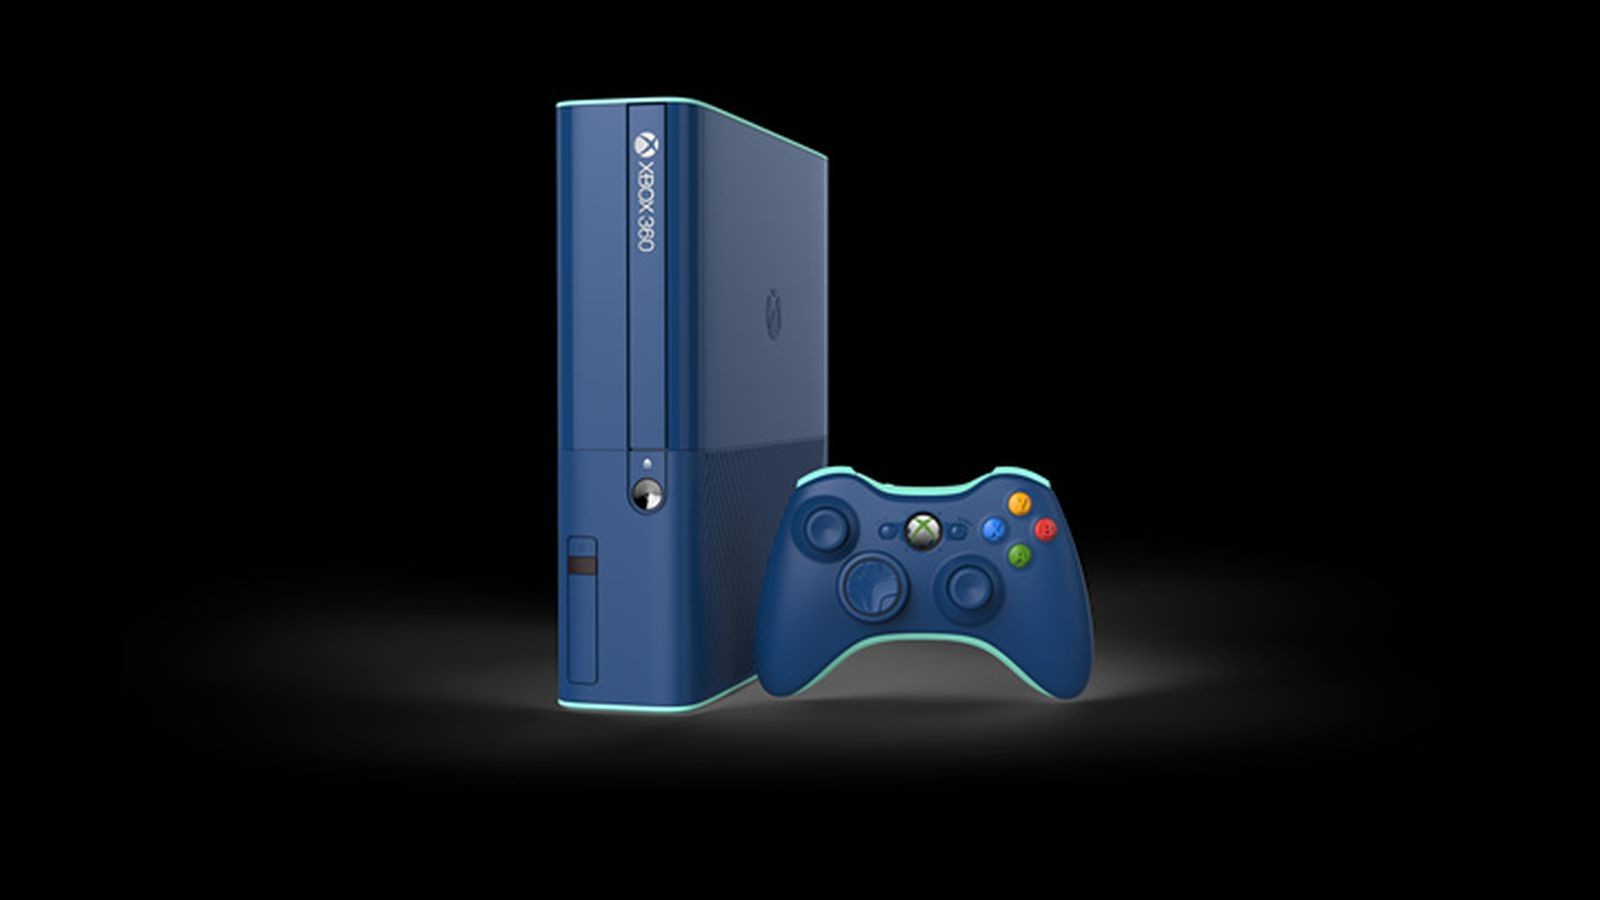 Microsoft Fall Wallpaper You Can Get This Blue Xbox 360 In A Call Of Duty Bundle